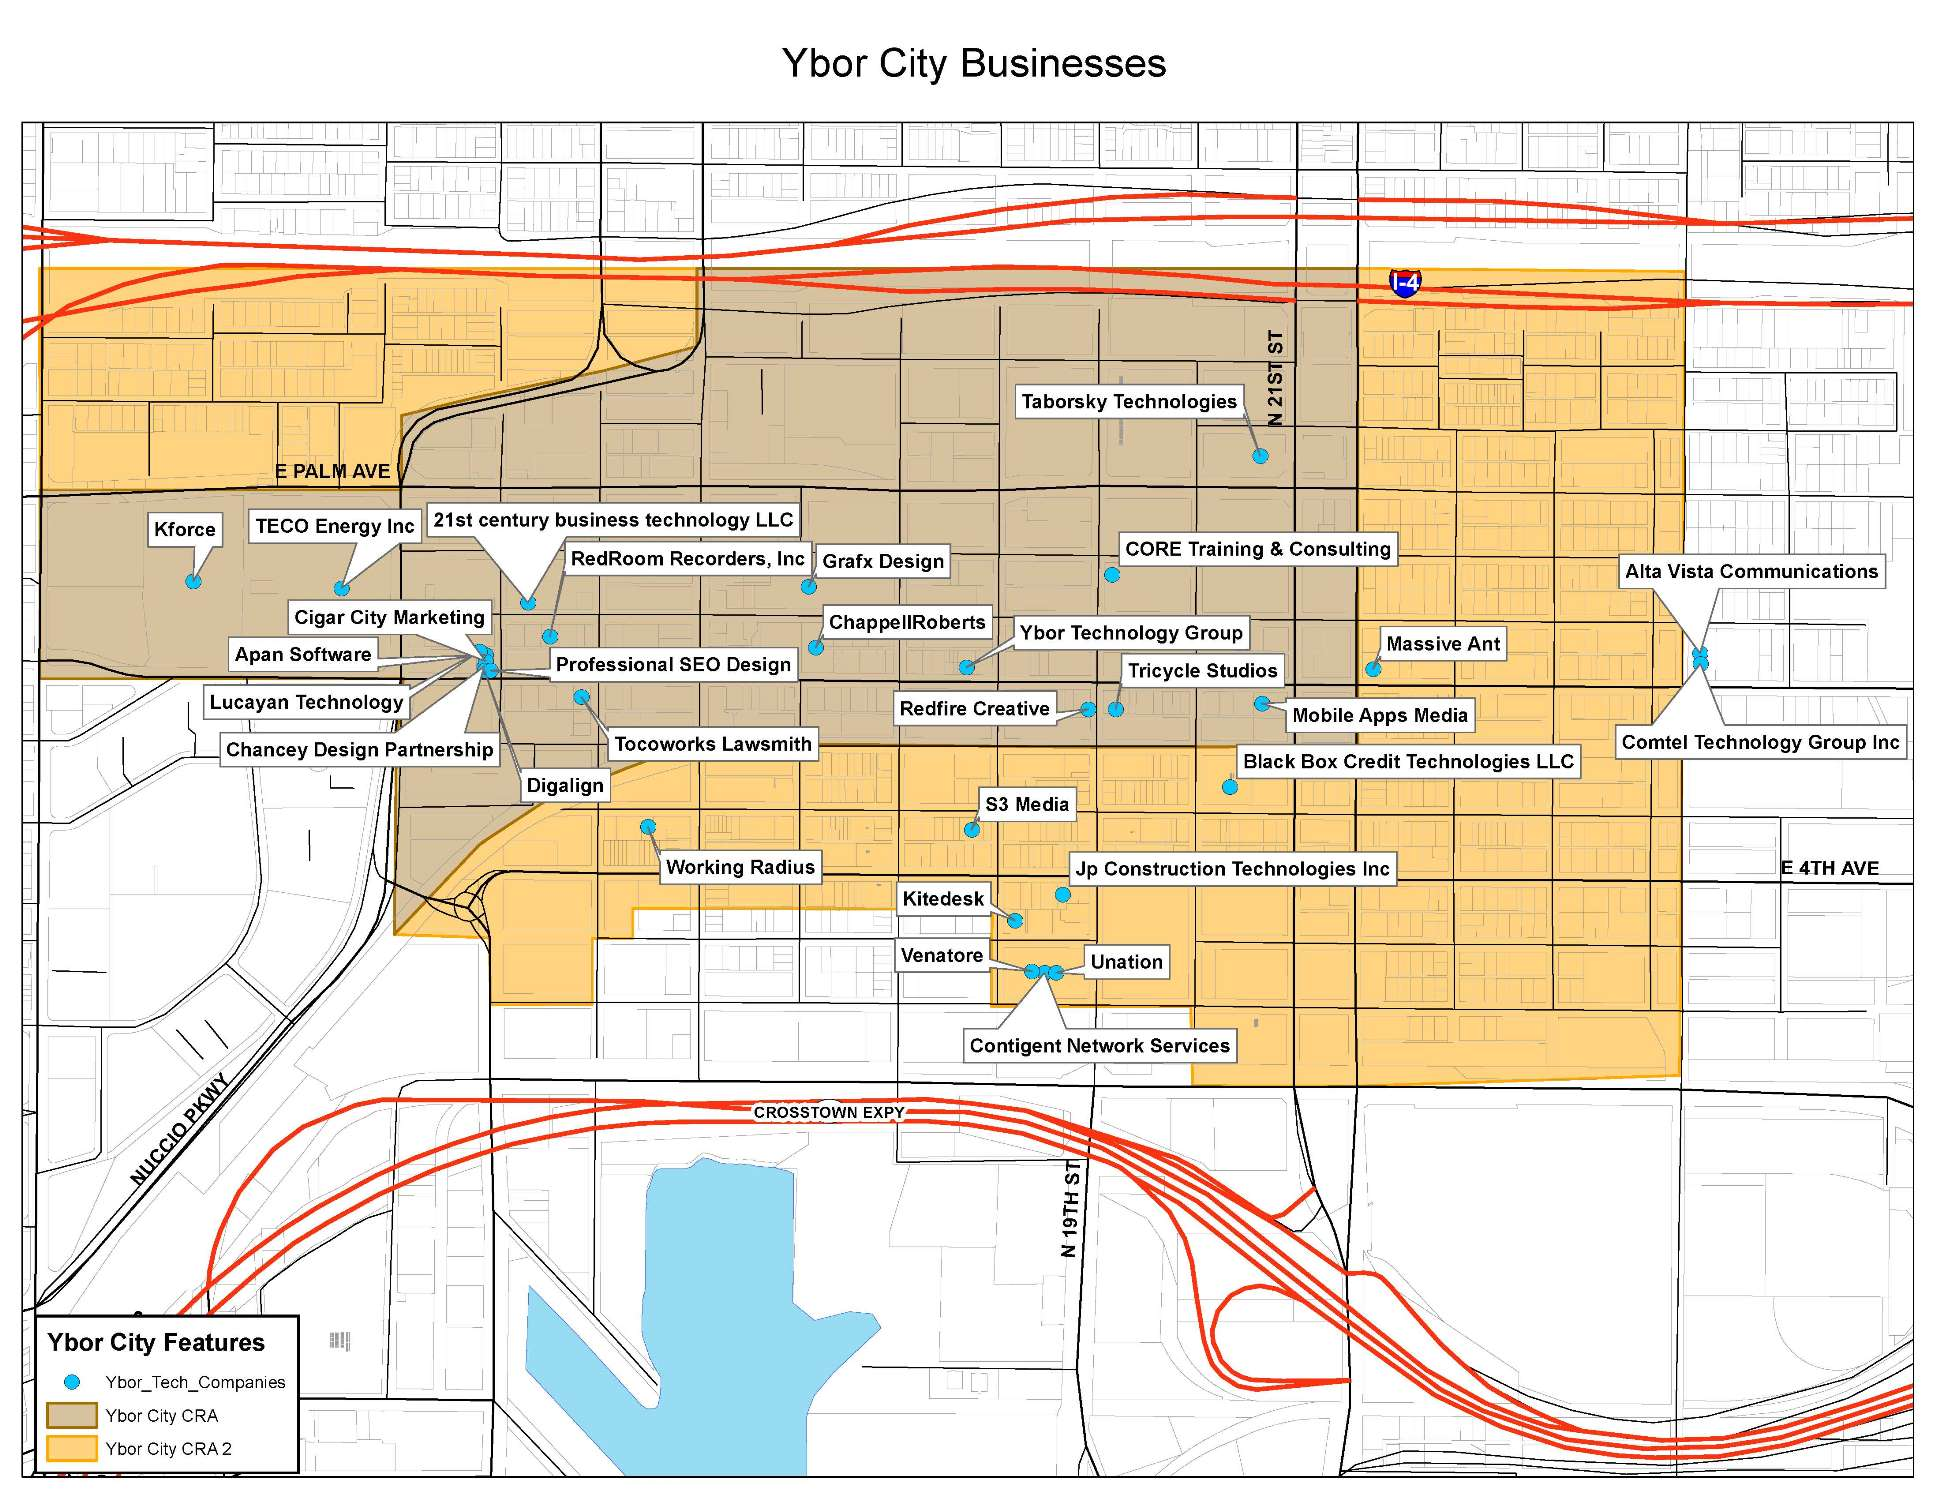 ing the Code: Ybor City's Tech Boom | Ybor City Ybor City Map on odessa city map, wellington city map, pasco city map, bradenton city map, lakeland city map, miami city map, tampa map, jacksonville city map, sarasota city map, apalachicola city map, sun city center map, york city map, jefferson county street map, okeechobee county zoning map, st. petersburg city map, dunedin city map, melbourne city map, palm harbor city map, st. petersburg pier map, winter haven city map,